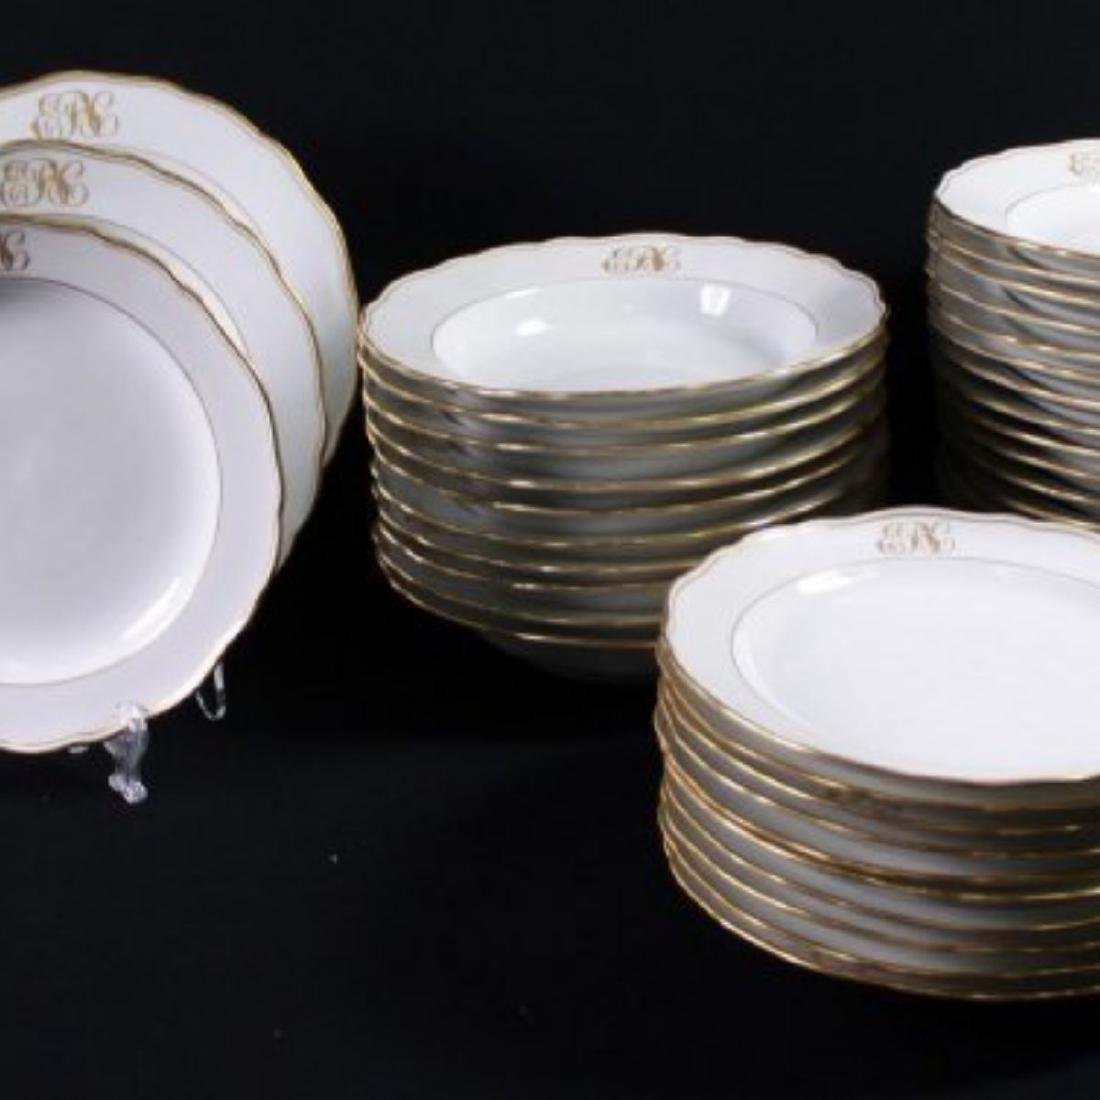 19TH C MEISSEN PART DINER SERVICE WITH THE UNDER GLAZED - 4